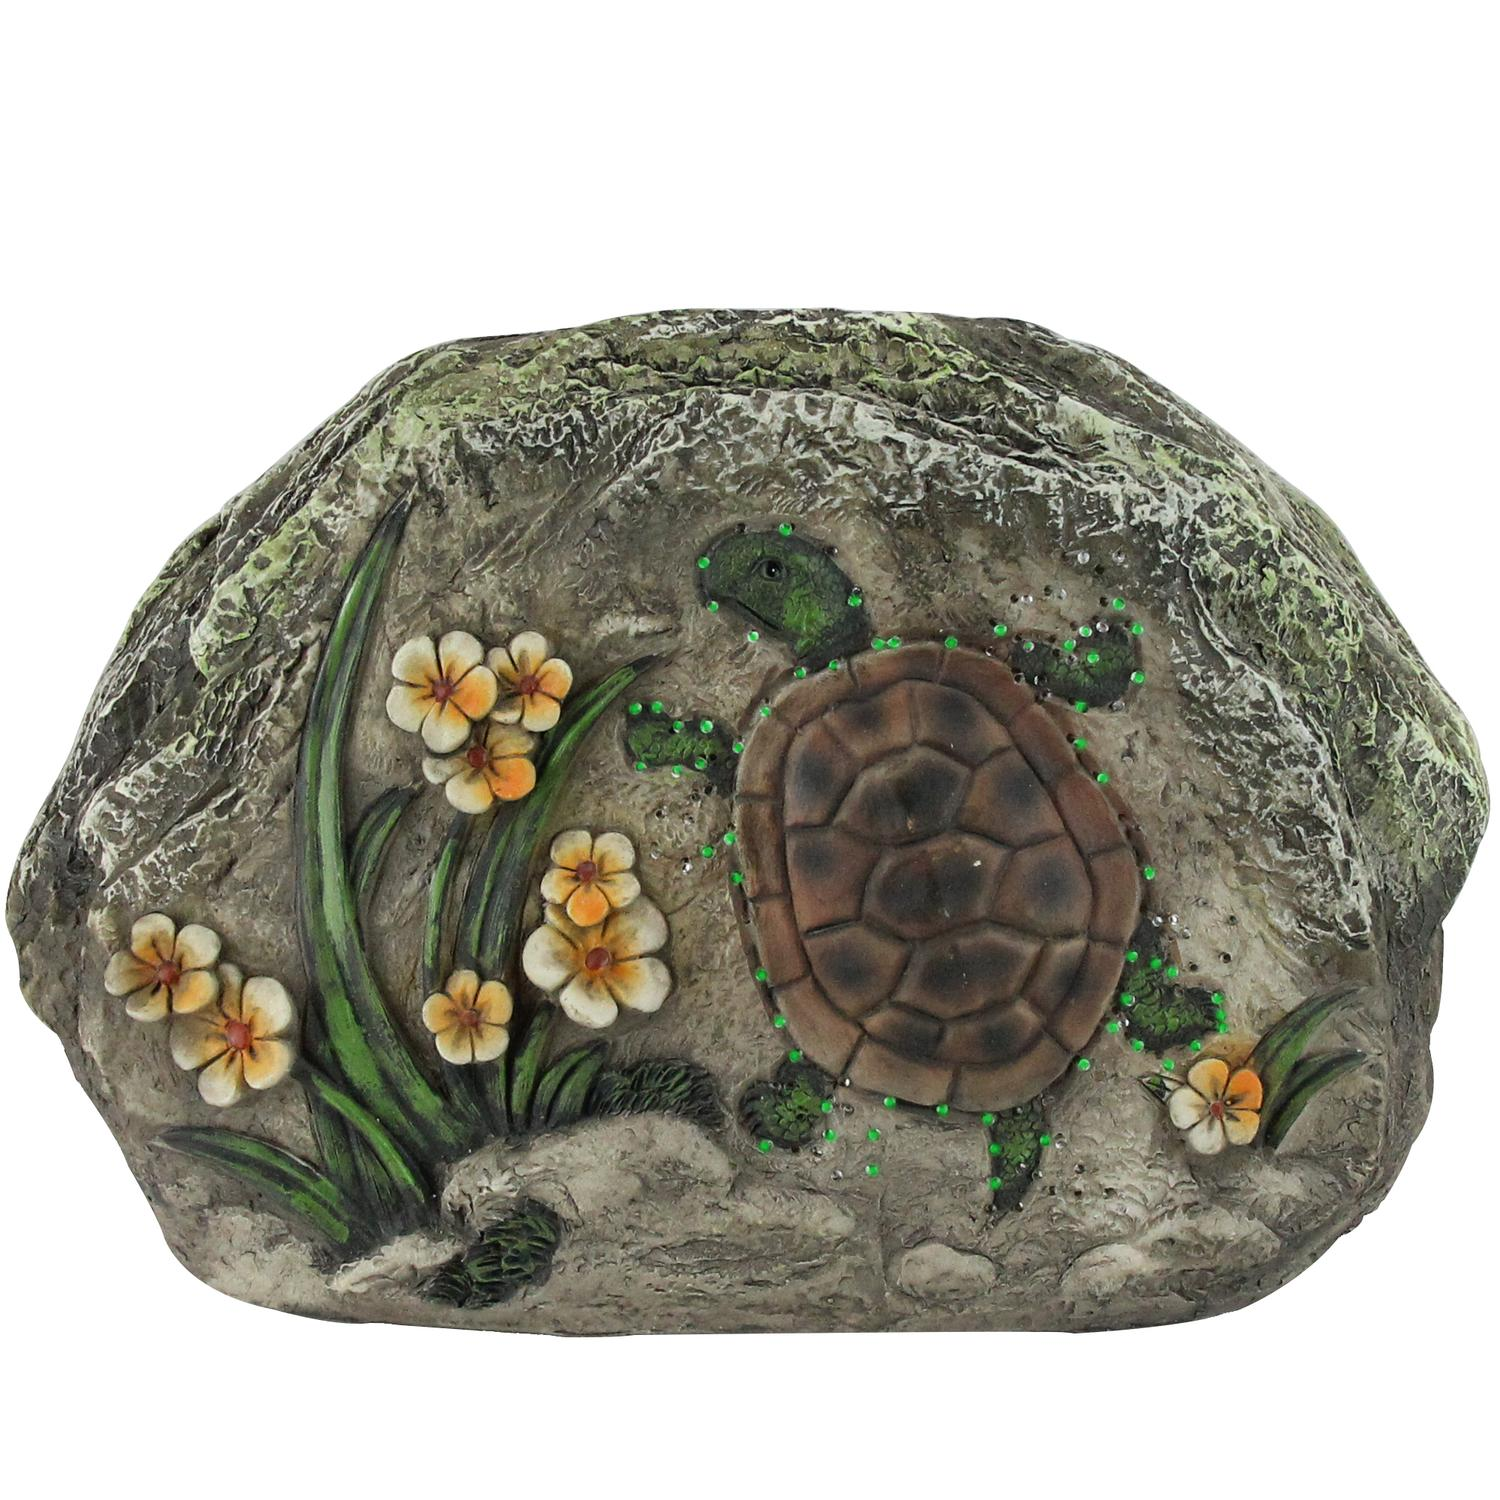 "7"" LED Lighted Solar Powered Turtle and Flowers Outdoor Garden Stone"